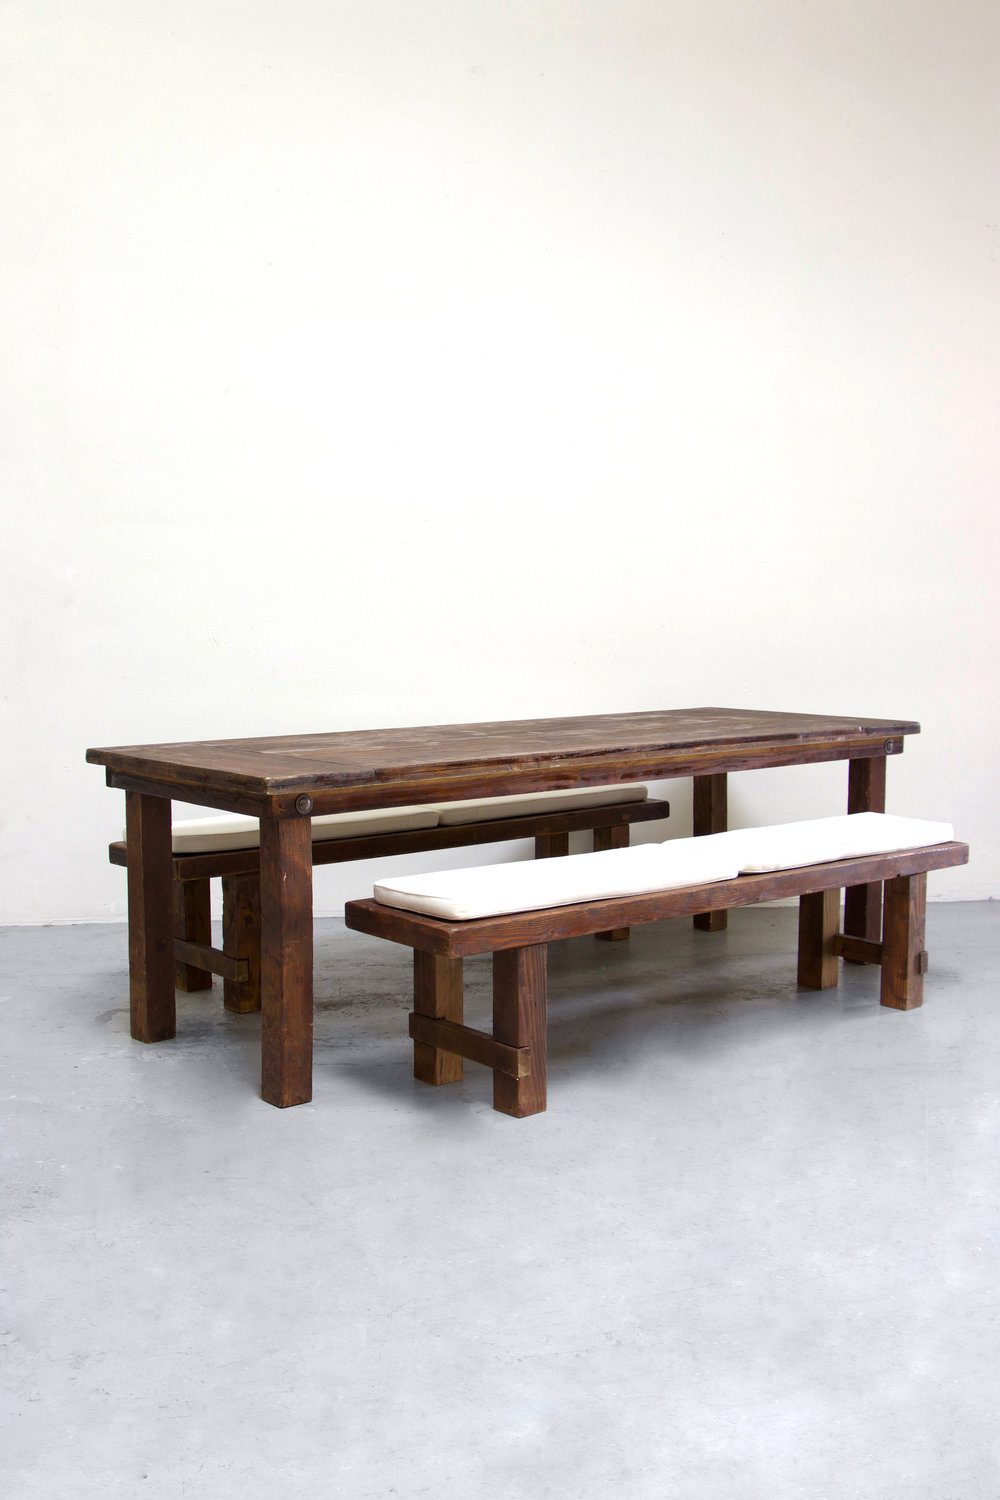 1 Mahogany Farm Table w/ 2 Long Benches $145